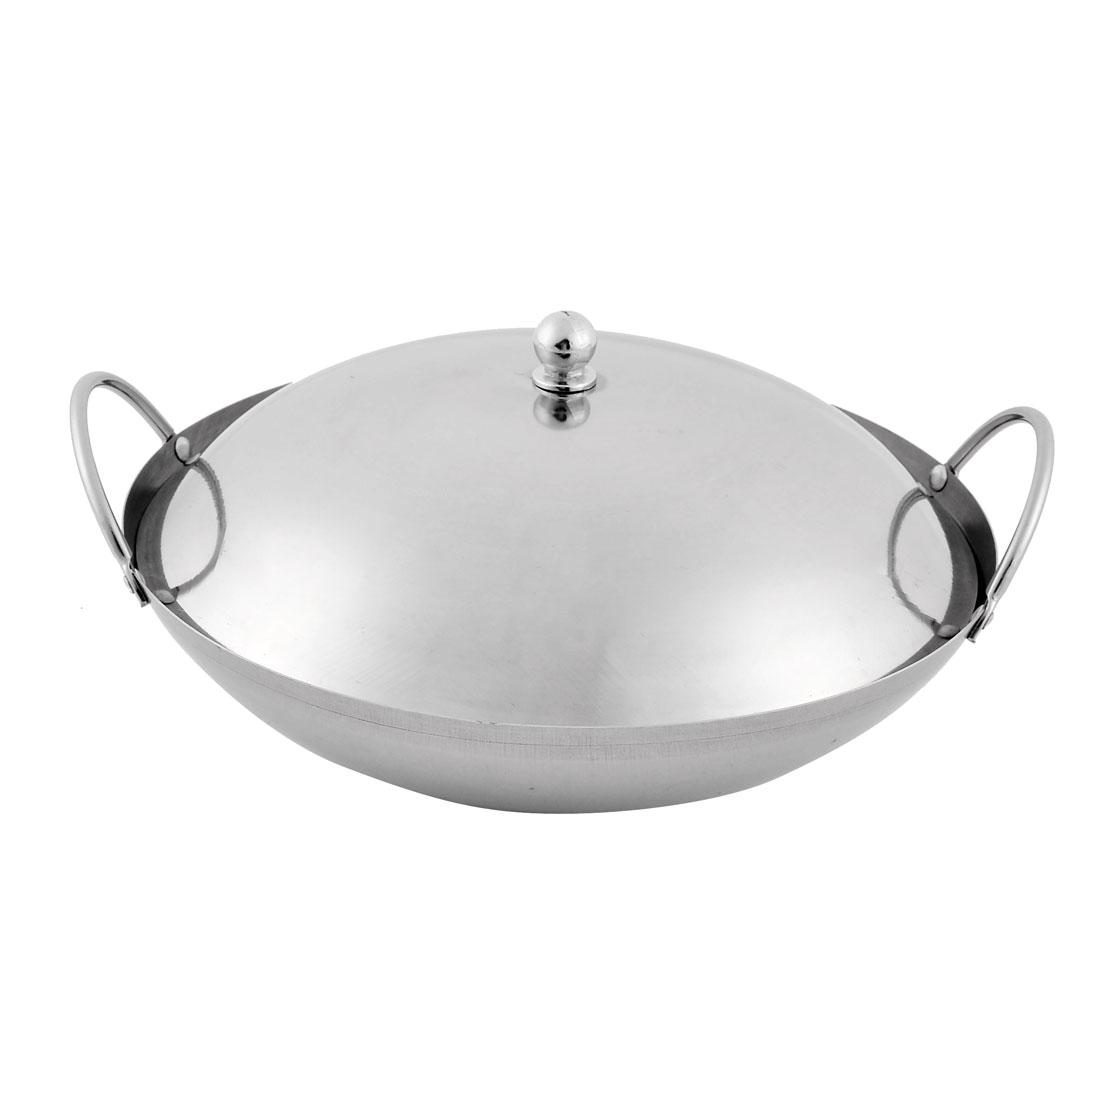 Home Restaurant Stainless Steel Chafing Dish Pot Silver Tone 22cm Diameter w Lid Cover